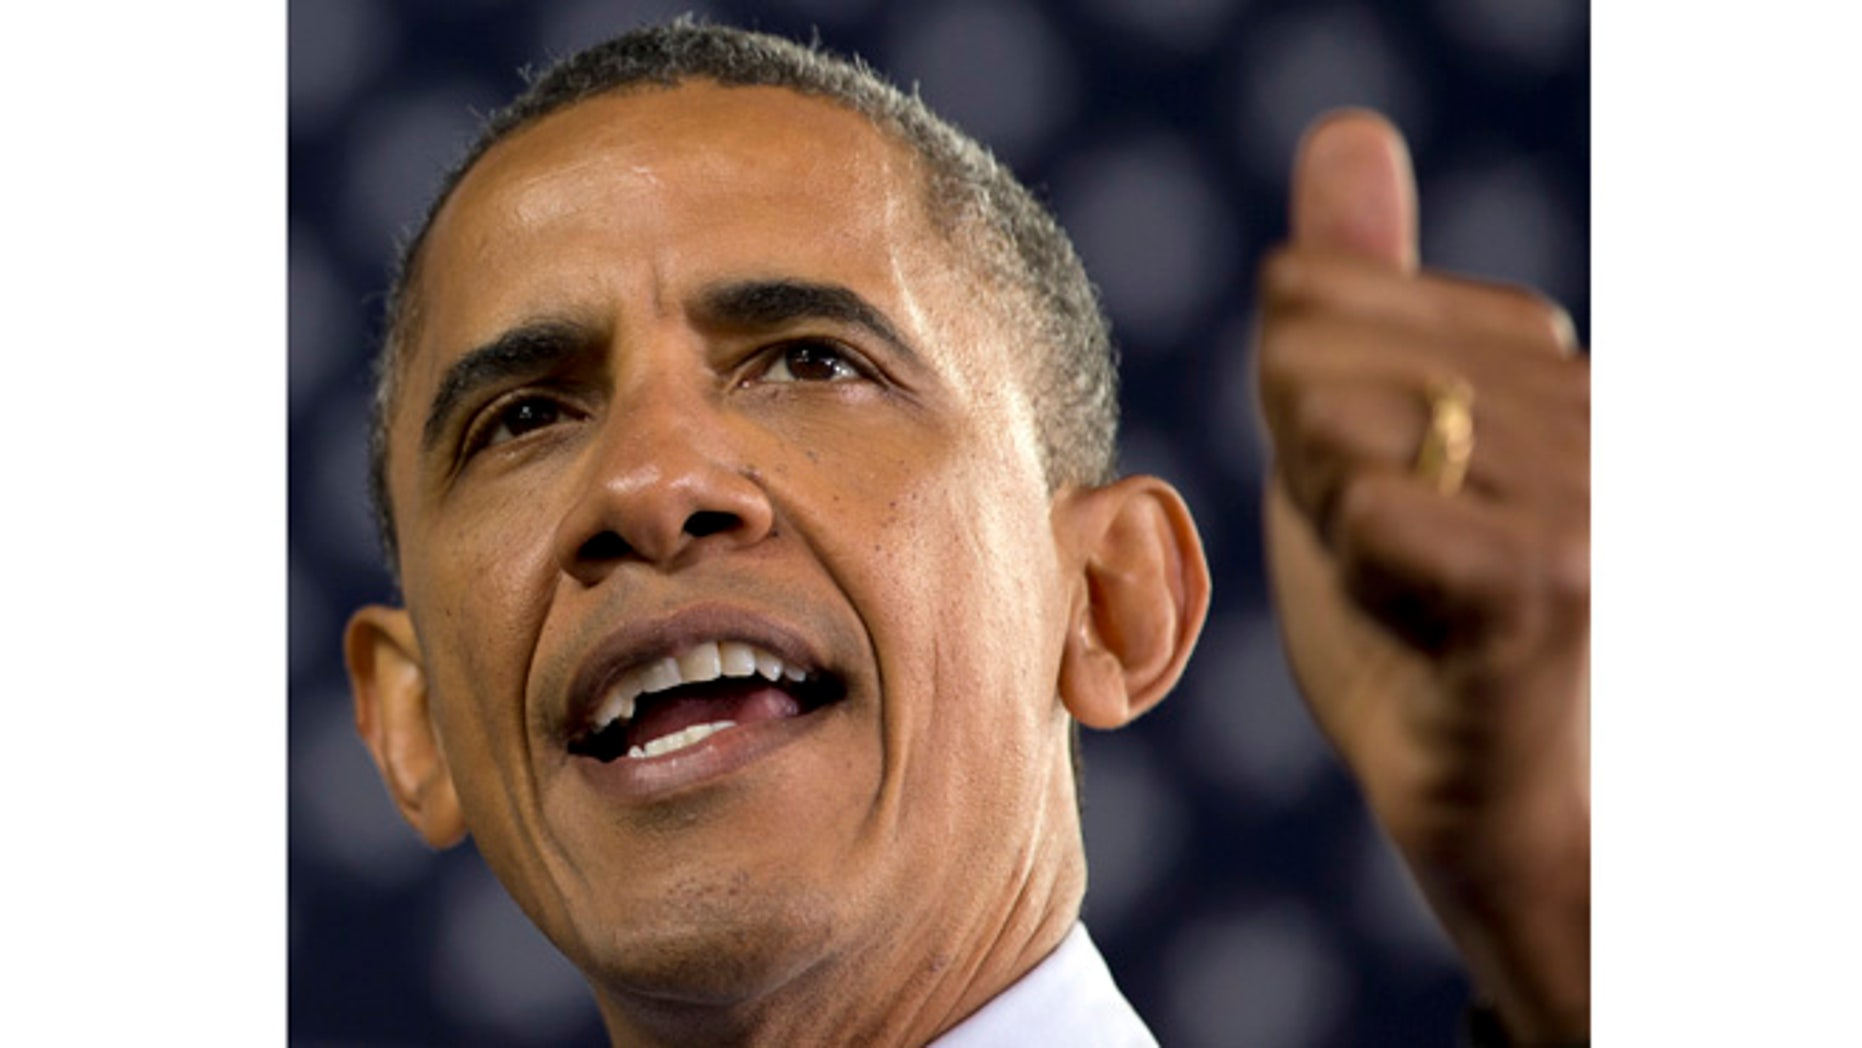 FILE - In this Sept. 22, 2012 file photo, President Barack Obama speaks in Milwaukee. Never have American voters re-elected a president whose work they disapprove of as much as Barack Obama. Not that Mitt Romney can take much comfort _ they've never elected a challenger with such high disapproval ratings, either.  (AP Photo/Carolyn Kaster, File)